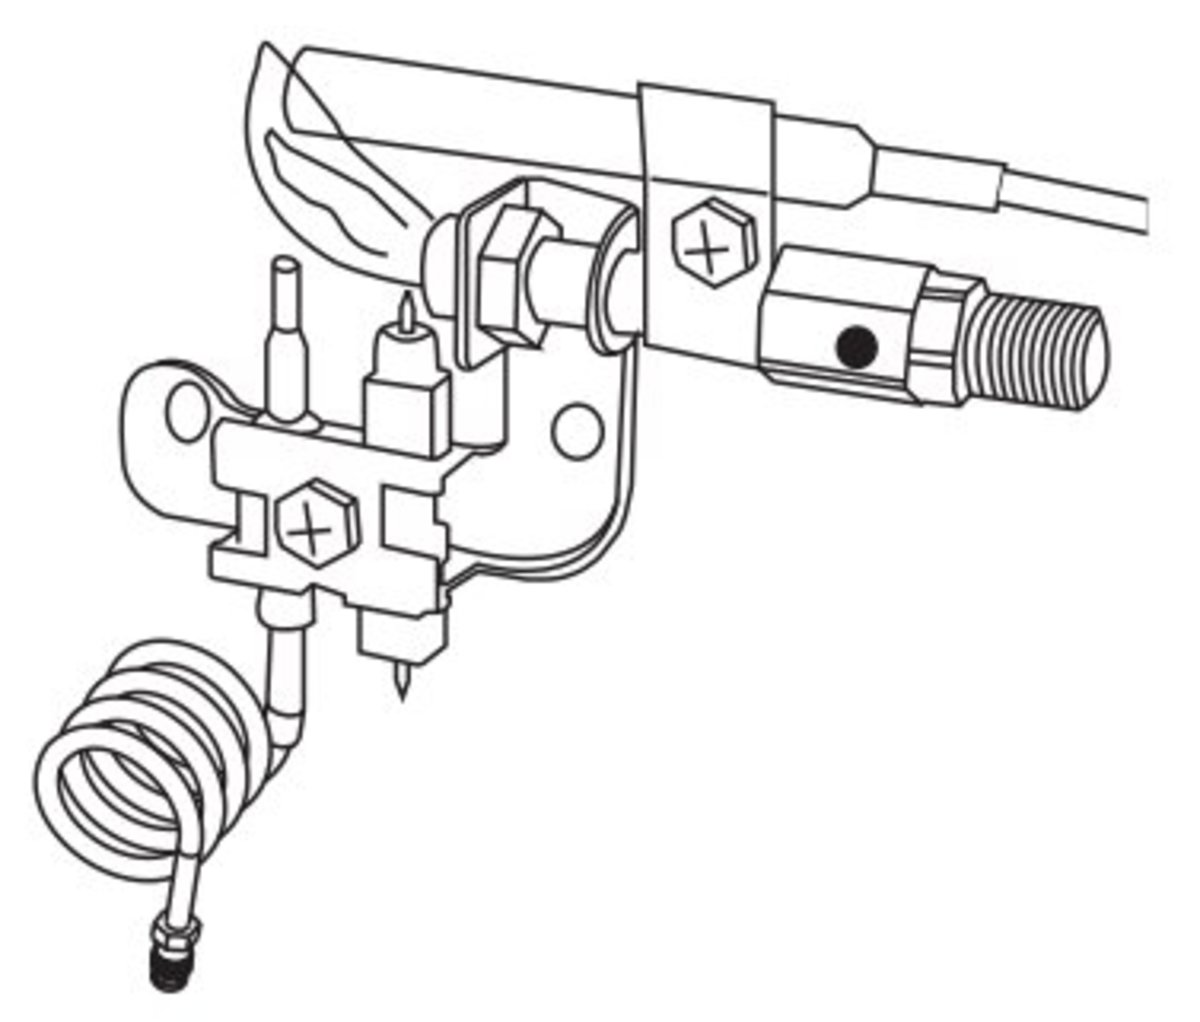 This shows a thermocouple in front of the pilot and a thermopile above the pilot for hot surface ignitions.  The thermocouple acts as ODS and the thermopile - many thermocouples in one - works with the remote ignition.